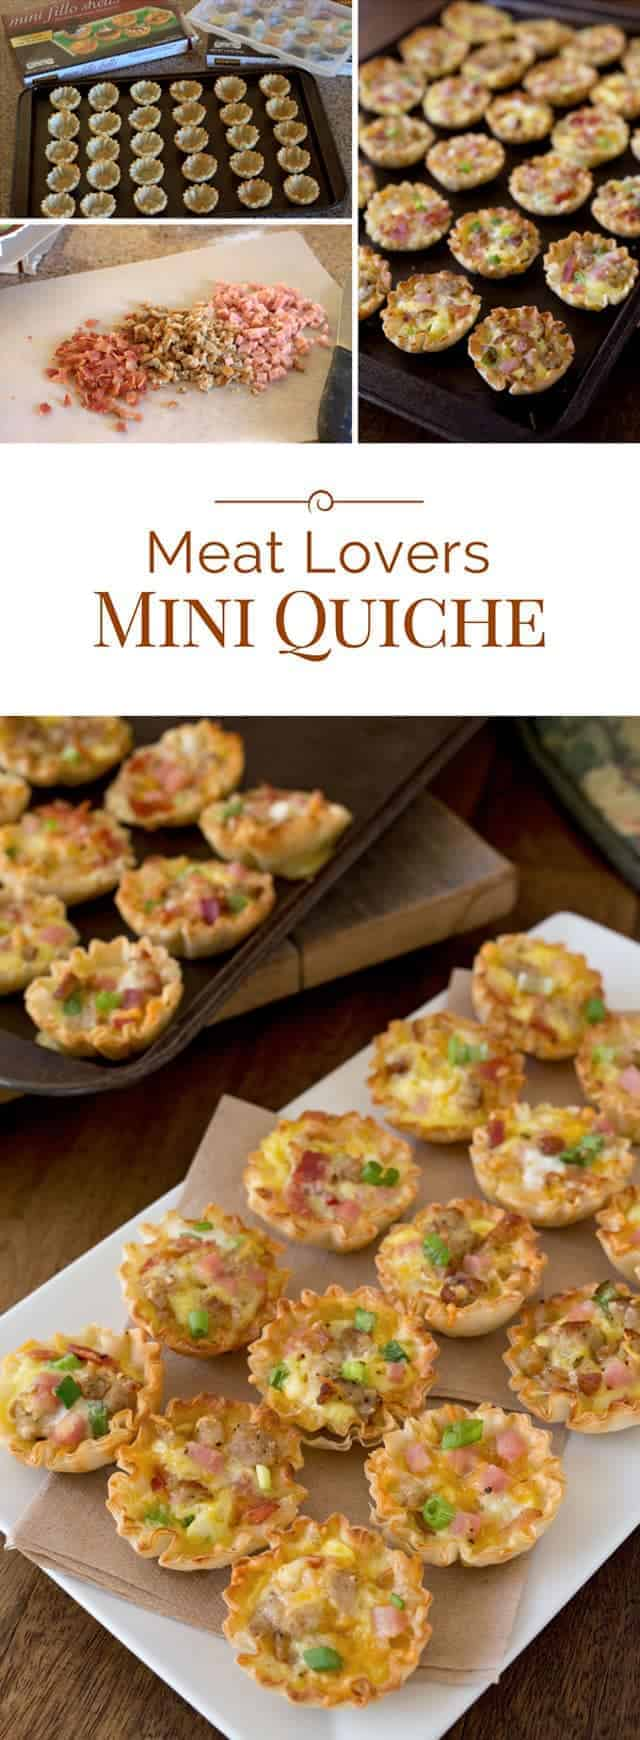 Meat-Lovers-Mini-Quiche-Collage-2-Barbara-Bakes